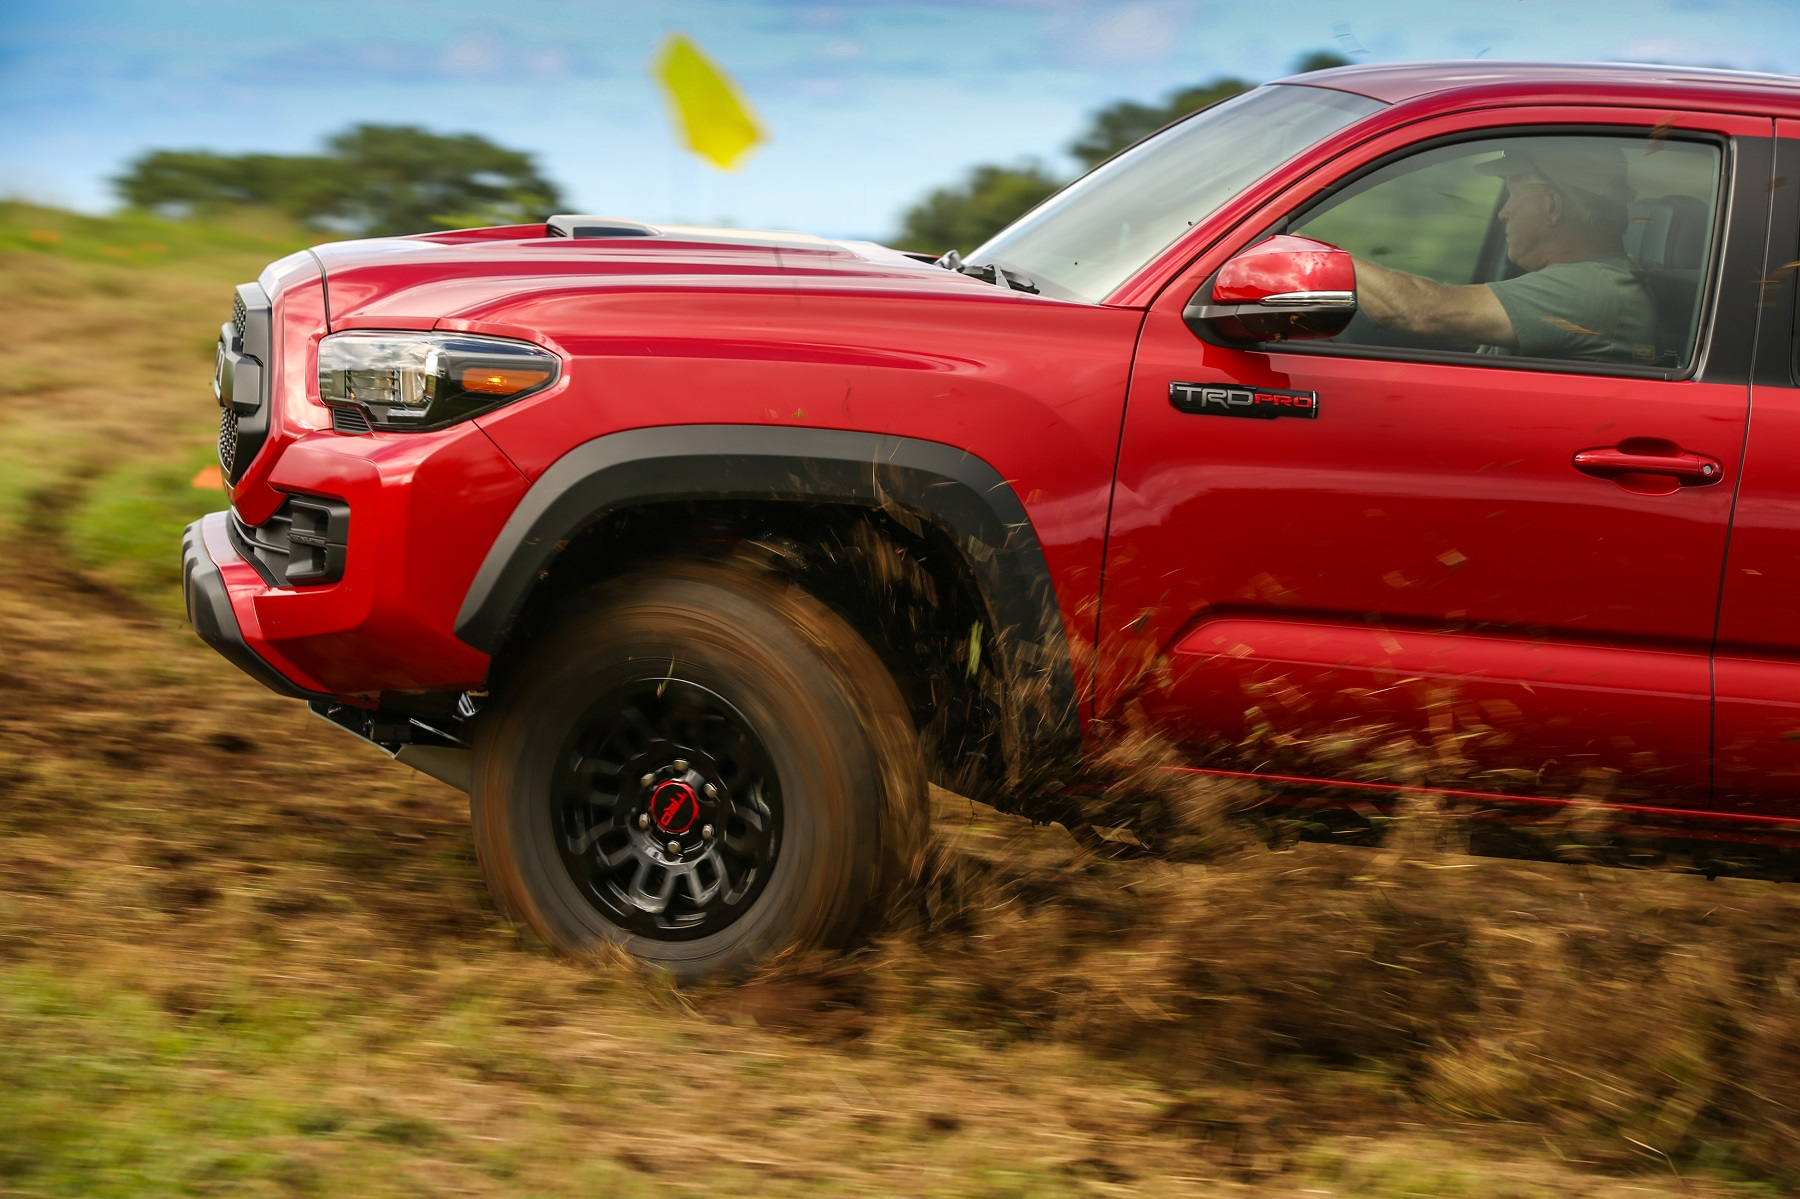 Toyota Tacoma Trd Off Road Rugged For Adventure Truckers Truck Talk Groovecar